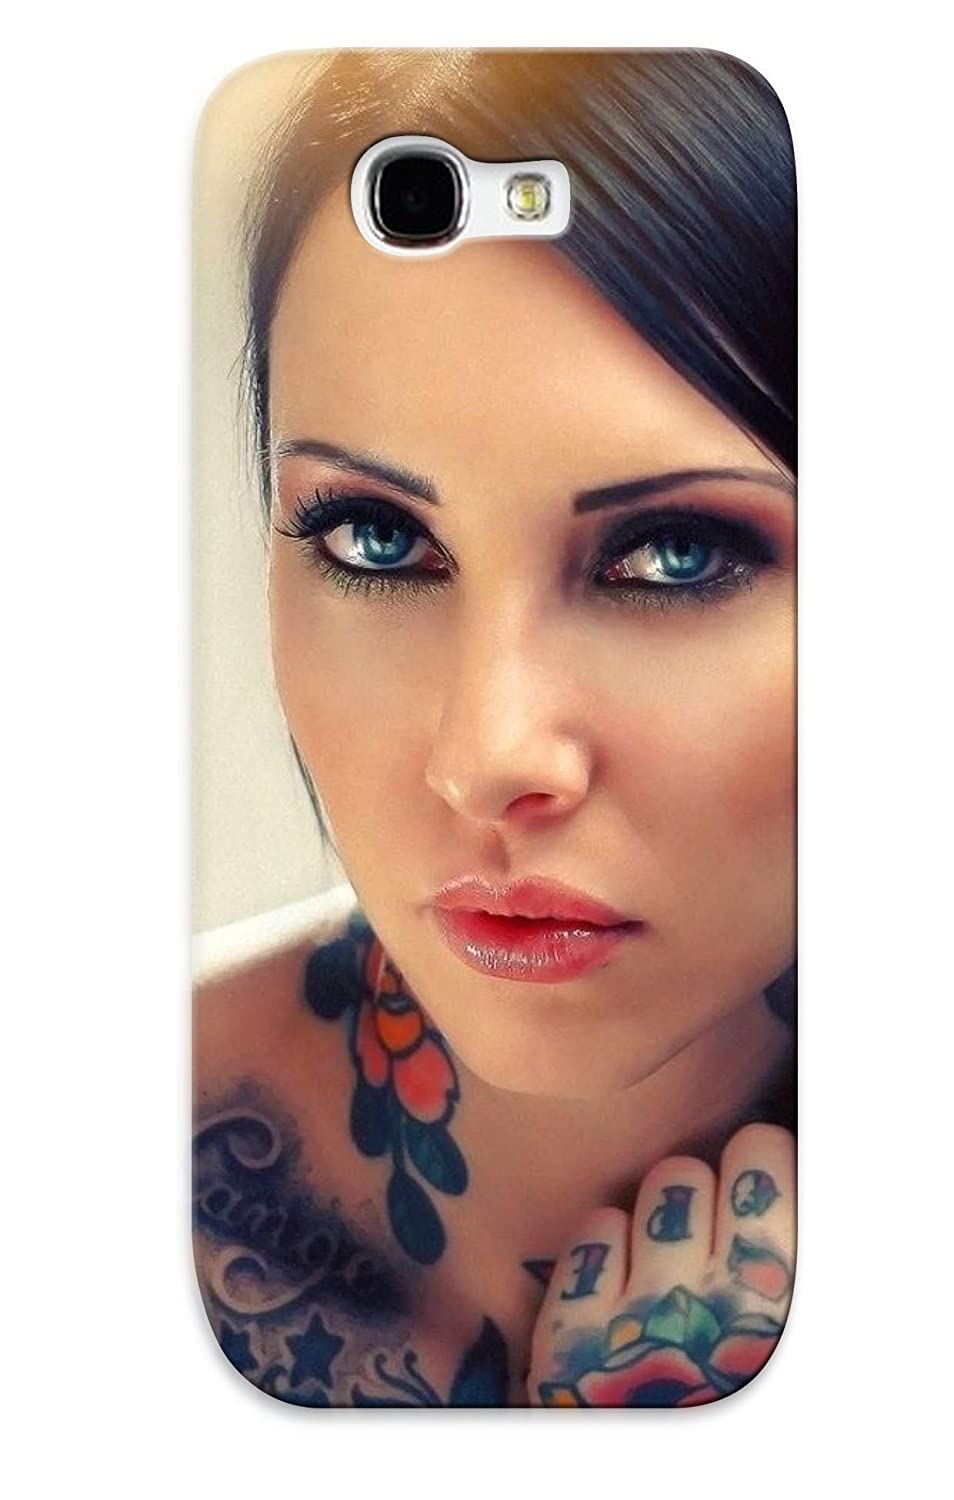 Amazon.com: New Cute Funny Glam Gothic Tatoo Face Eyes Pov Women Models Sexy  Babes Case Cover/ Galaxy Note 2 Case Cover For Lovers: Cell Phones & ...